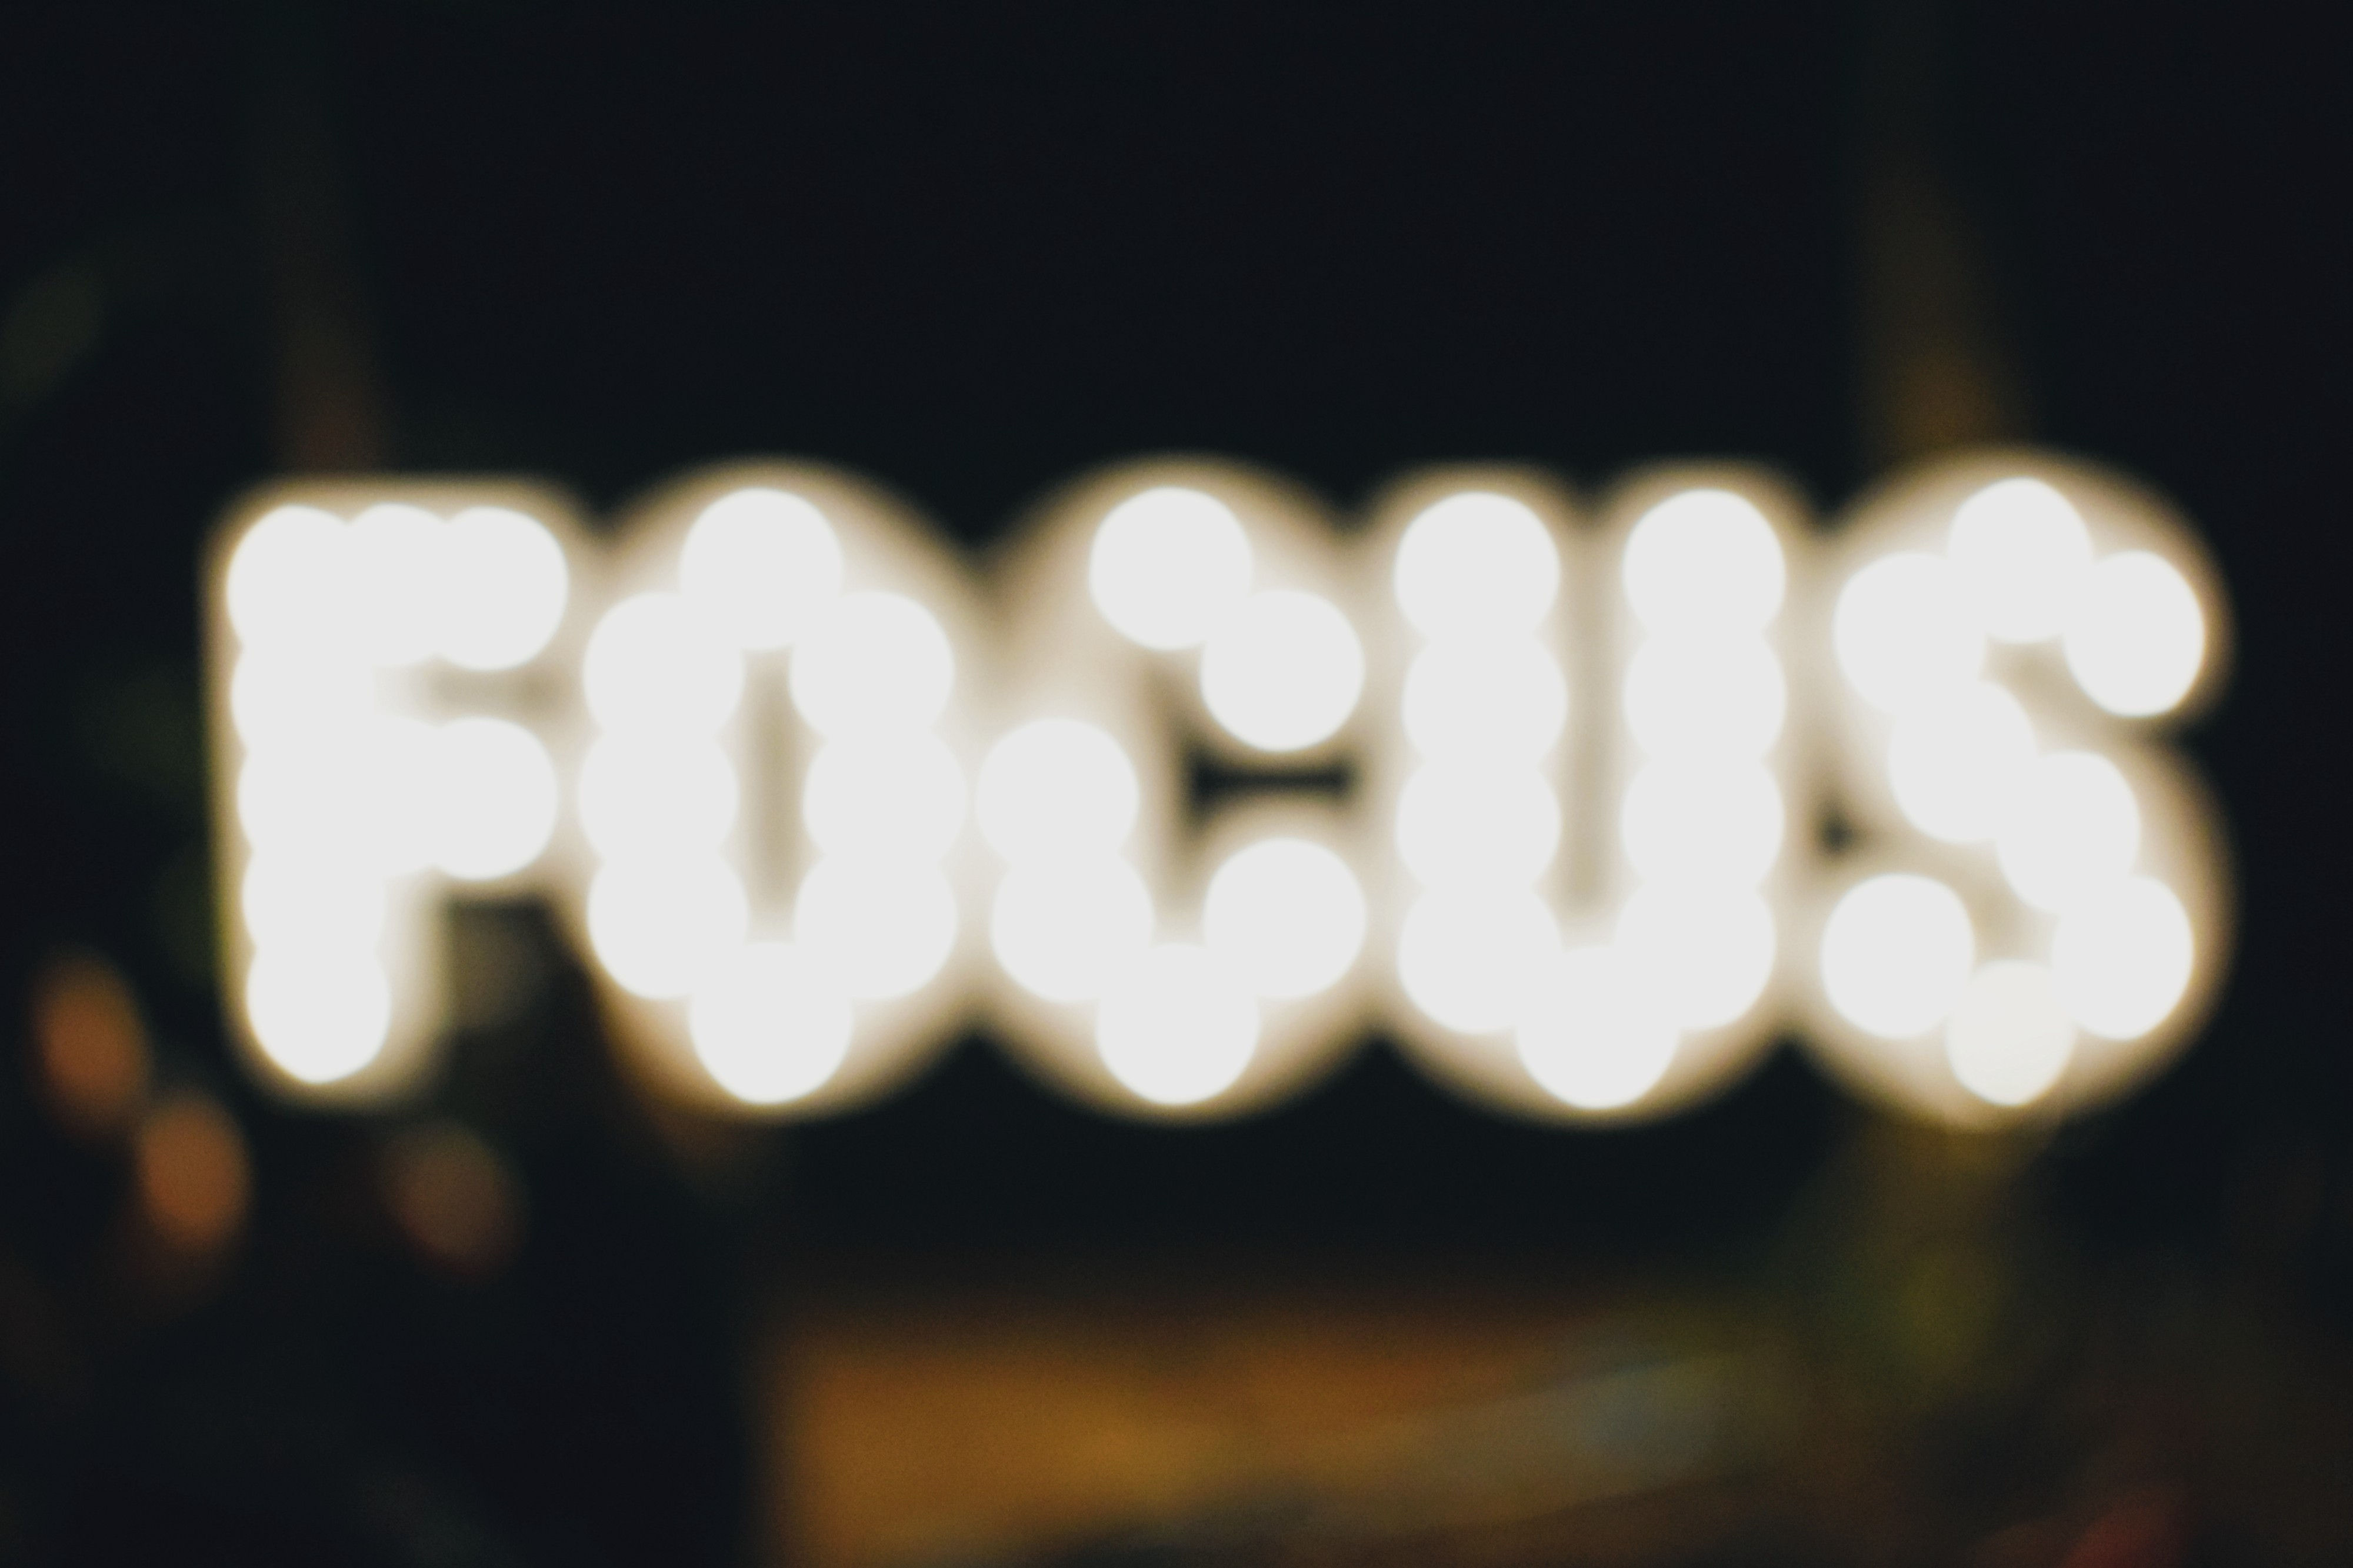 How to Increase Your Focus - The Startup - Medium